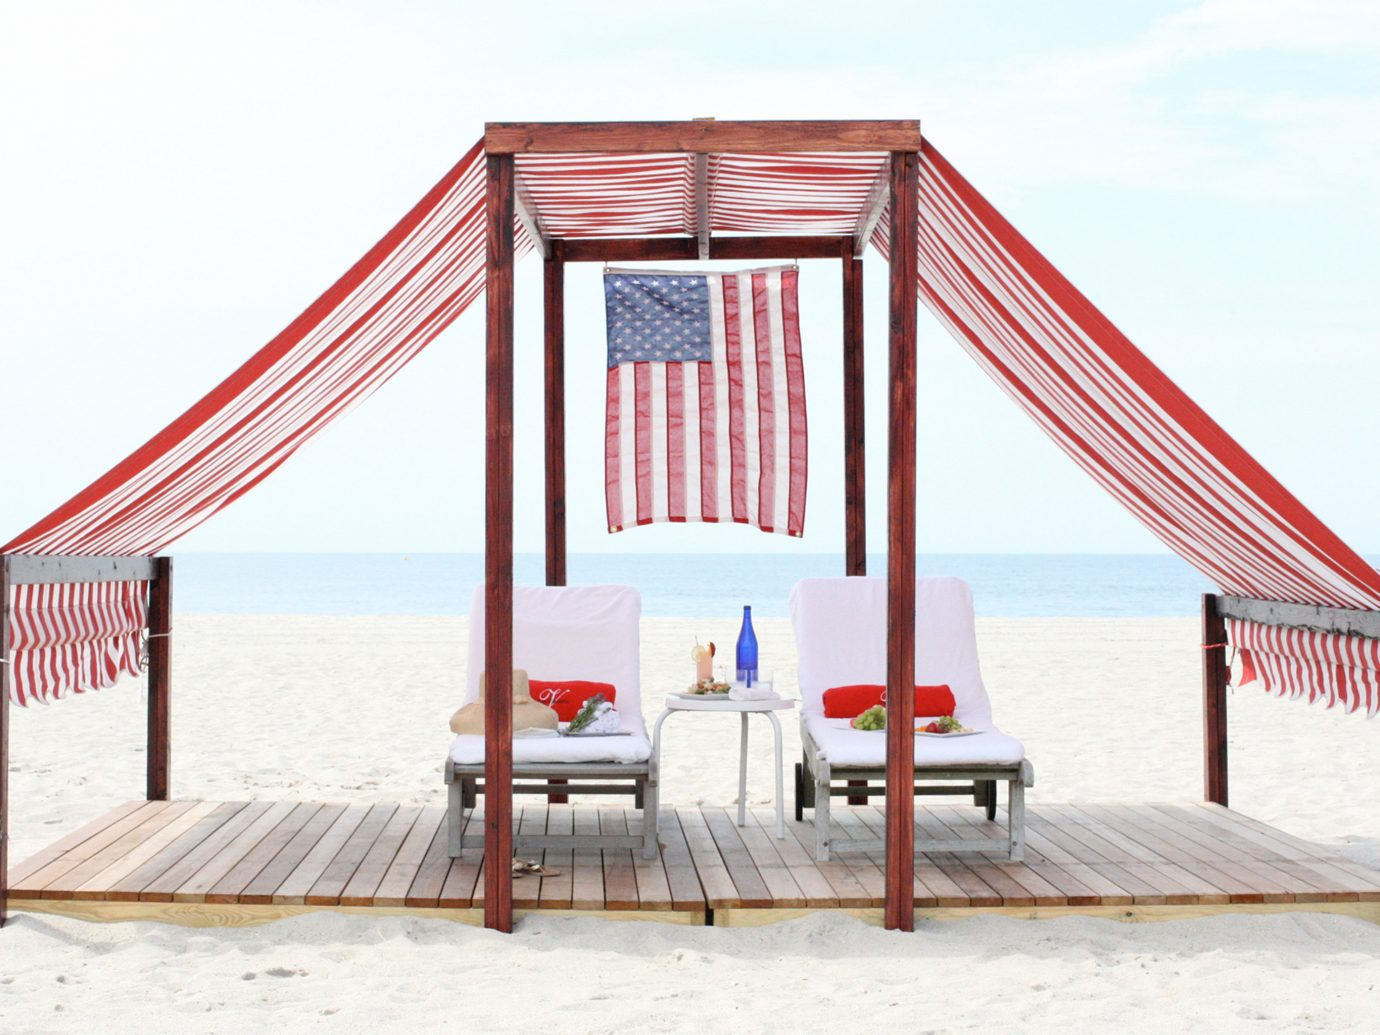 Beach Beachfront Boutique Deck Lounge Ocean Patio Trip Ideas Waterfront Weekend Getaways sky outdoor bed chair tent canopy Play outdoor play equipment interior design furniture day sandy